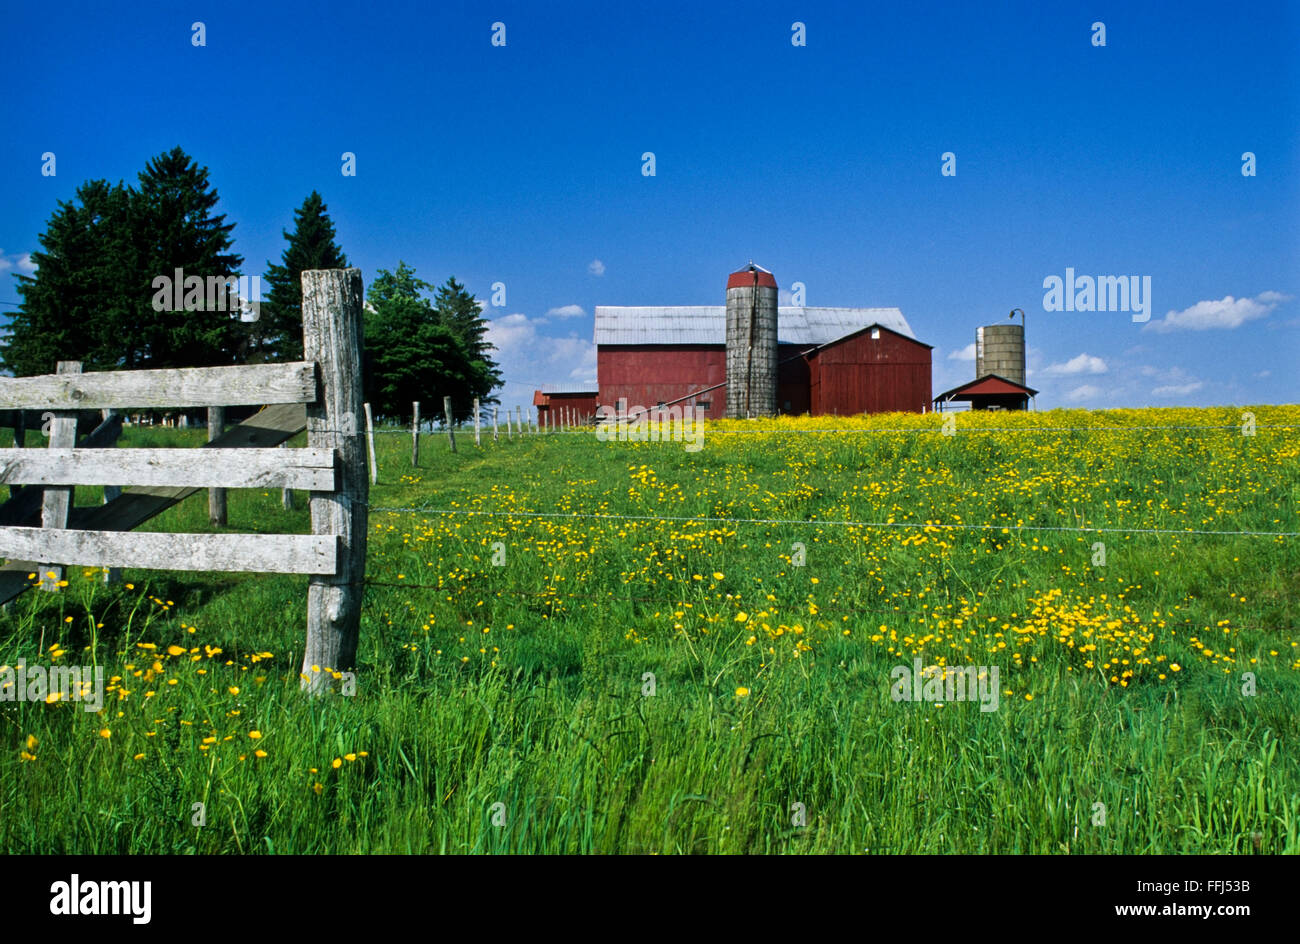 Red barn on a farm among yellow wildflowers in a meadow flowers and blue sky, Ohio, USA, US, Amish country meadows - Stock Image